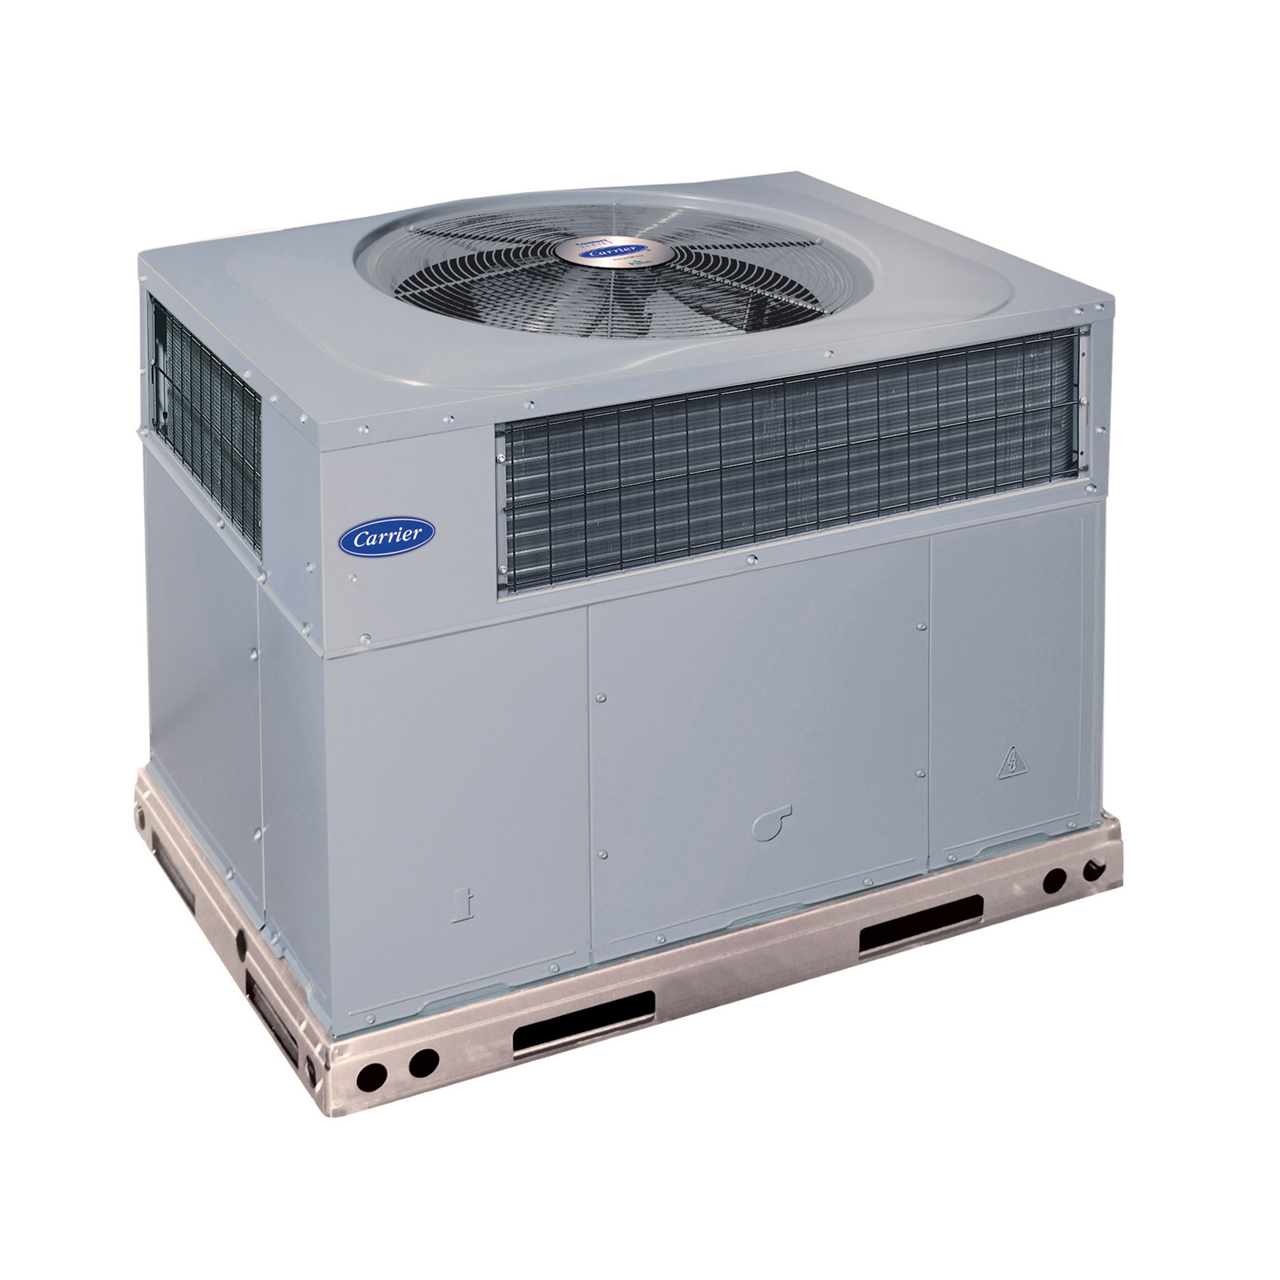 carrier-48es-a-gas-furnace-air-conditioner-system